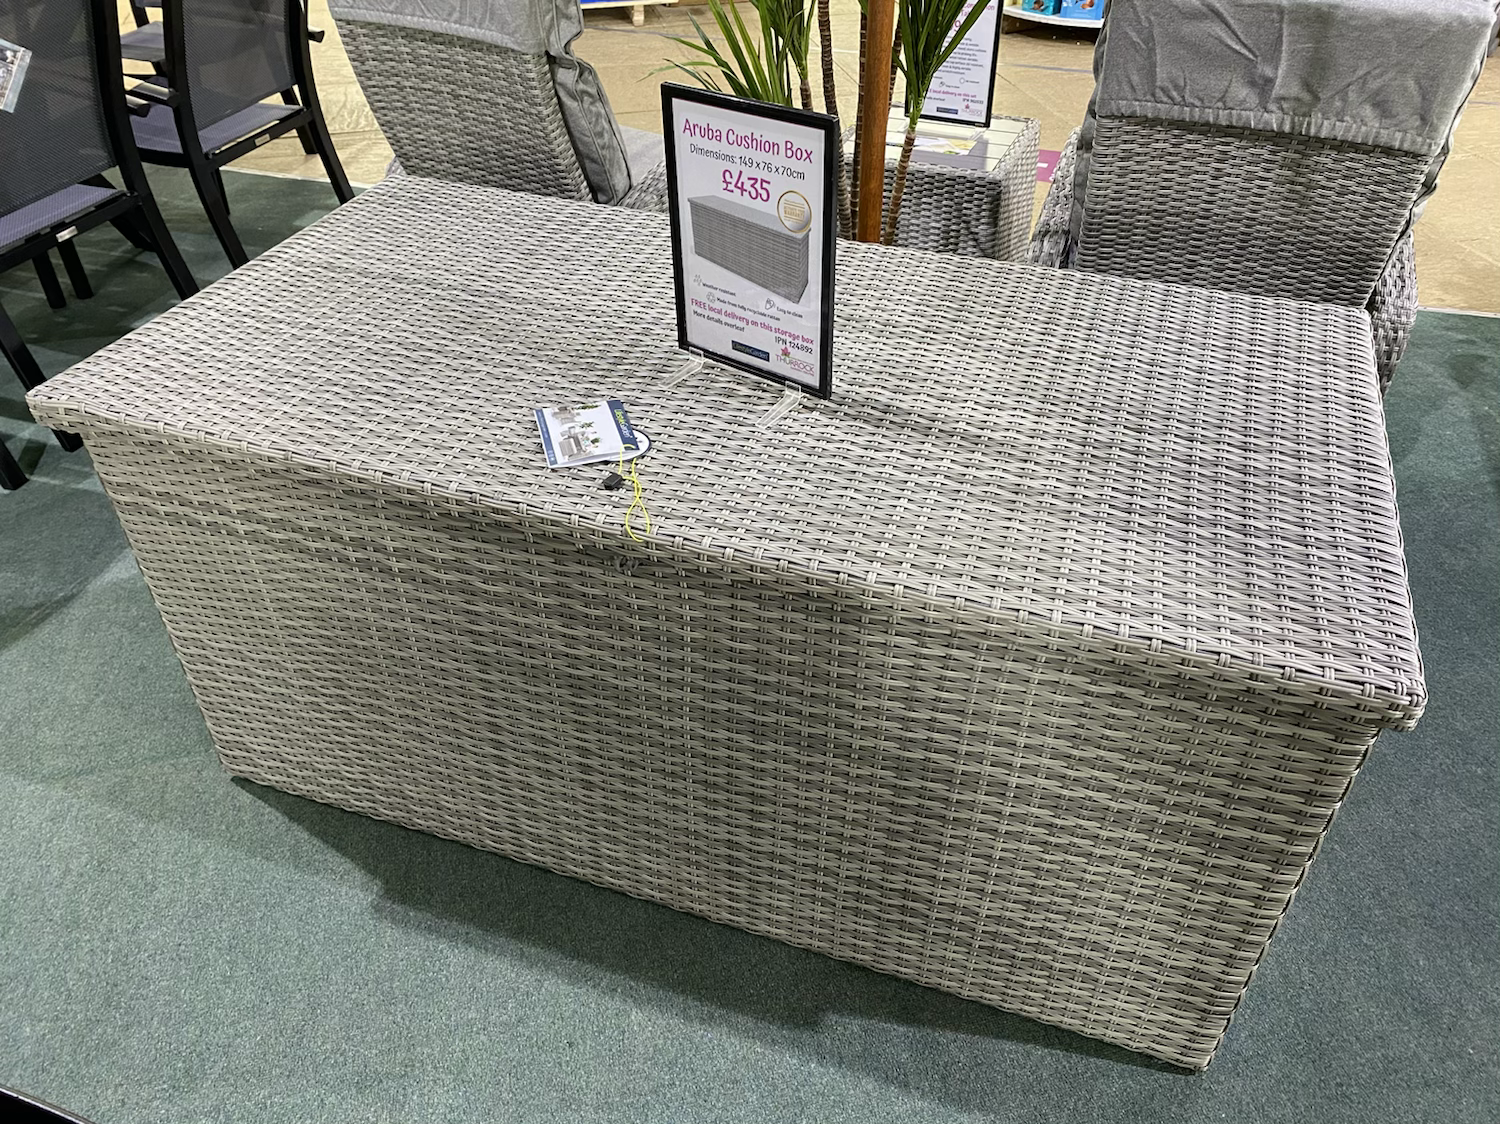 Aruba Cushion Box - £435